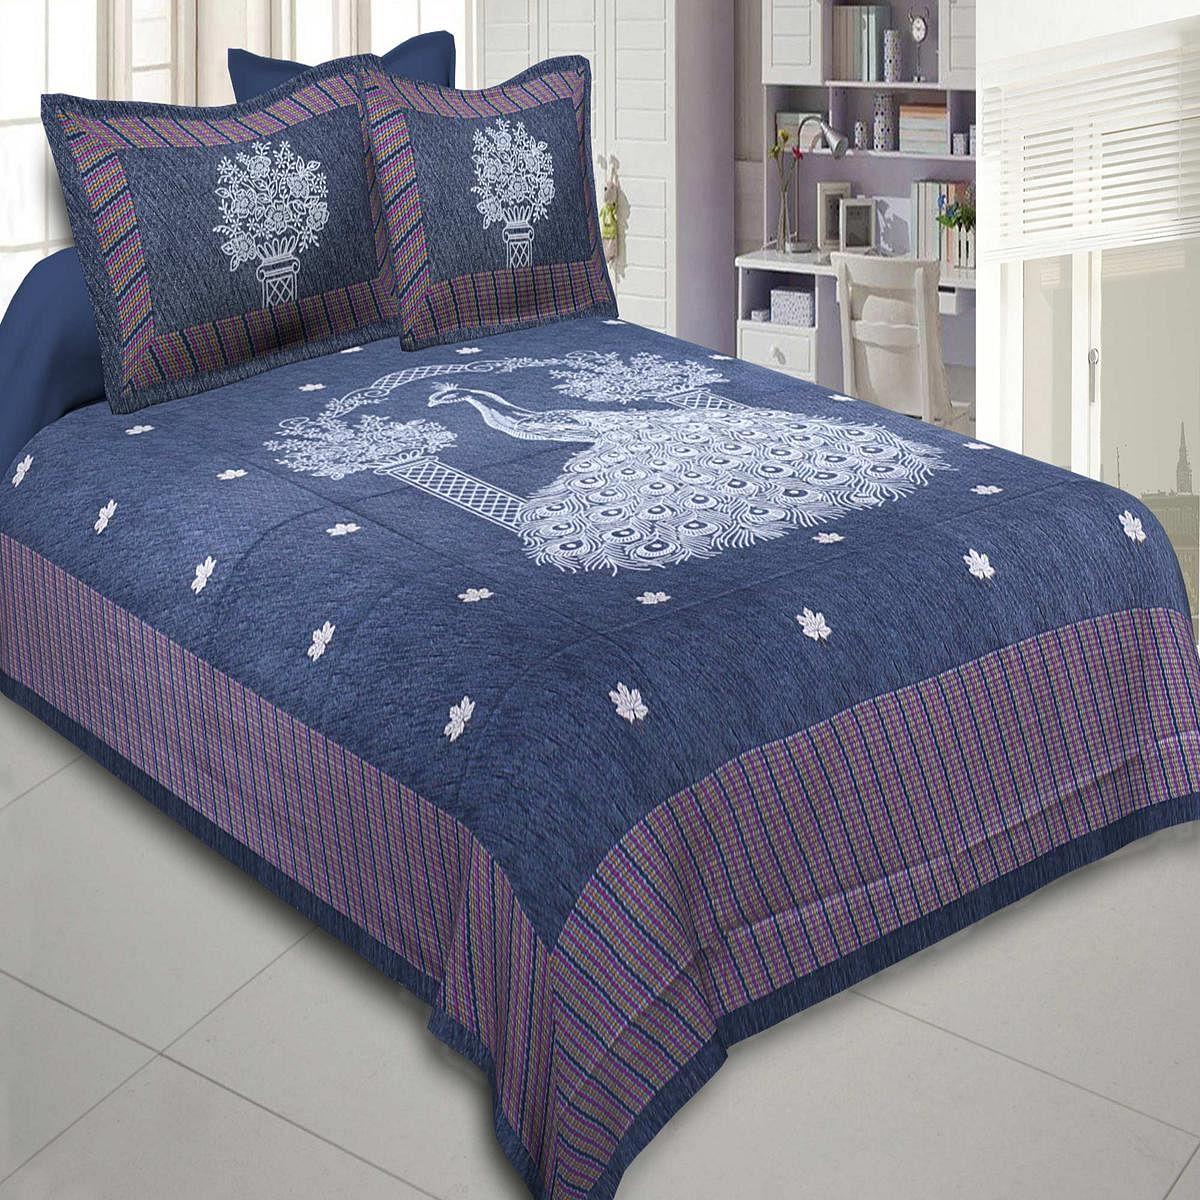 Ethnic Blue Colored Peacock Printed Cotton Double BedSheet With Pillow Cover